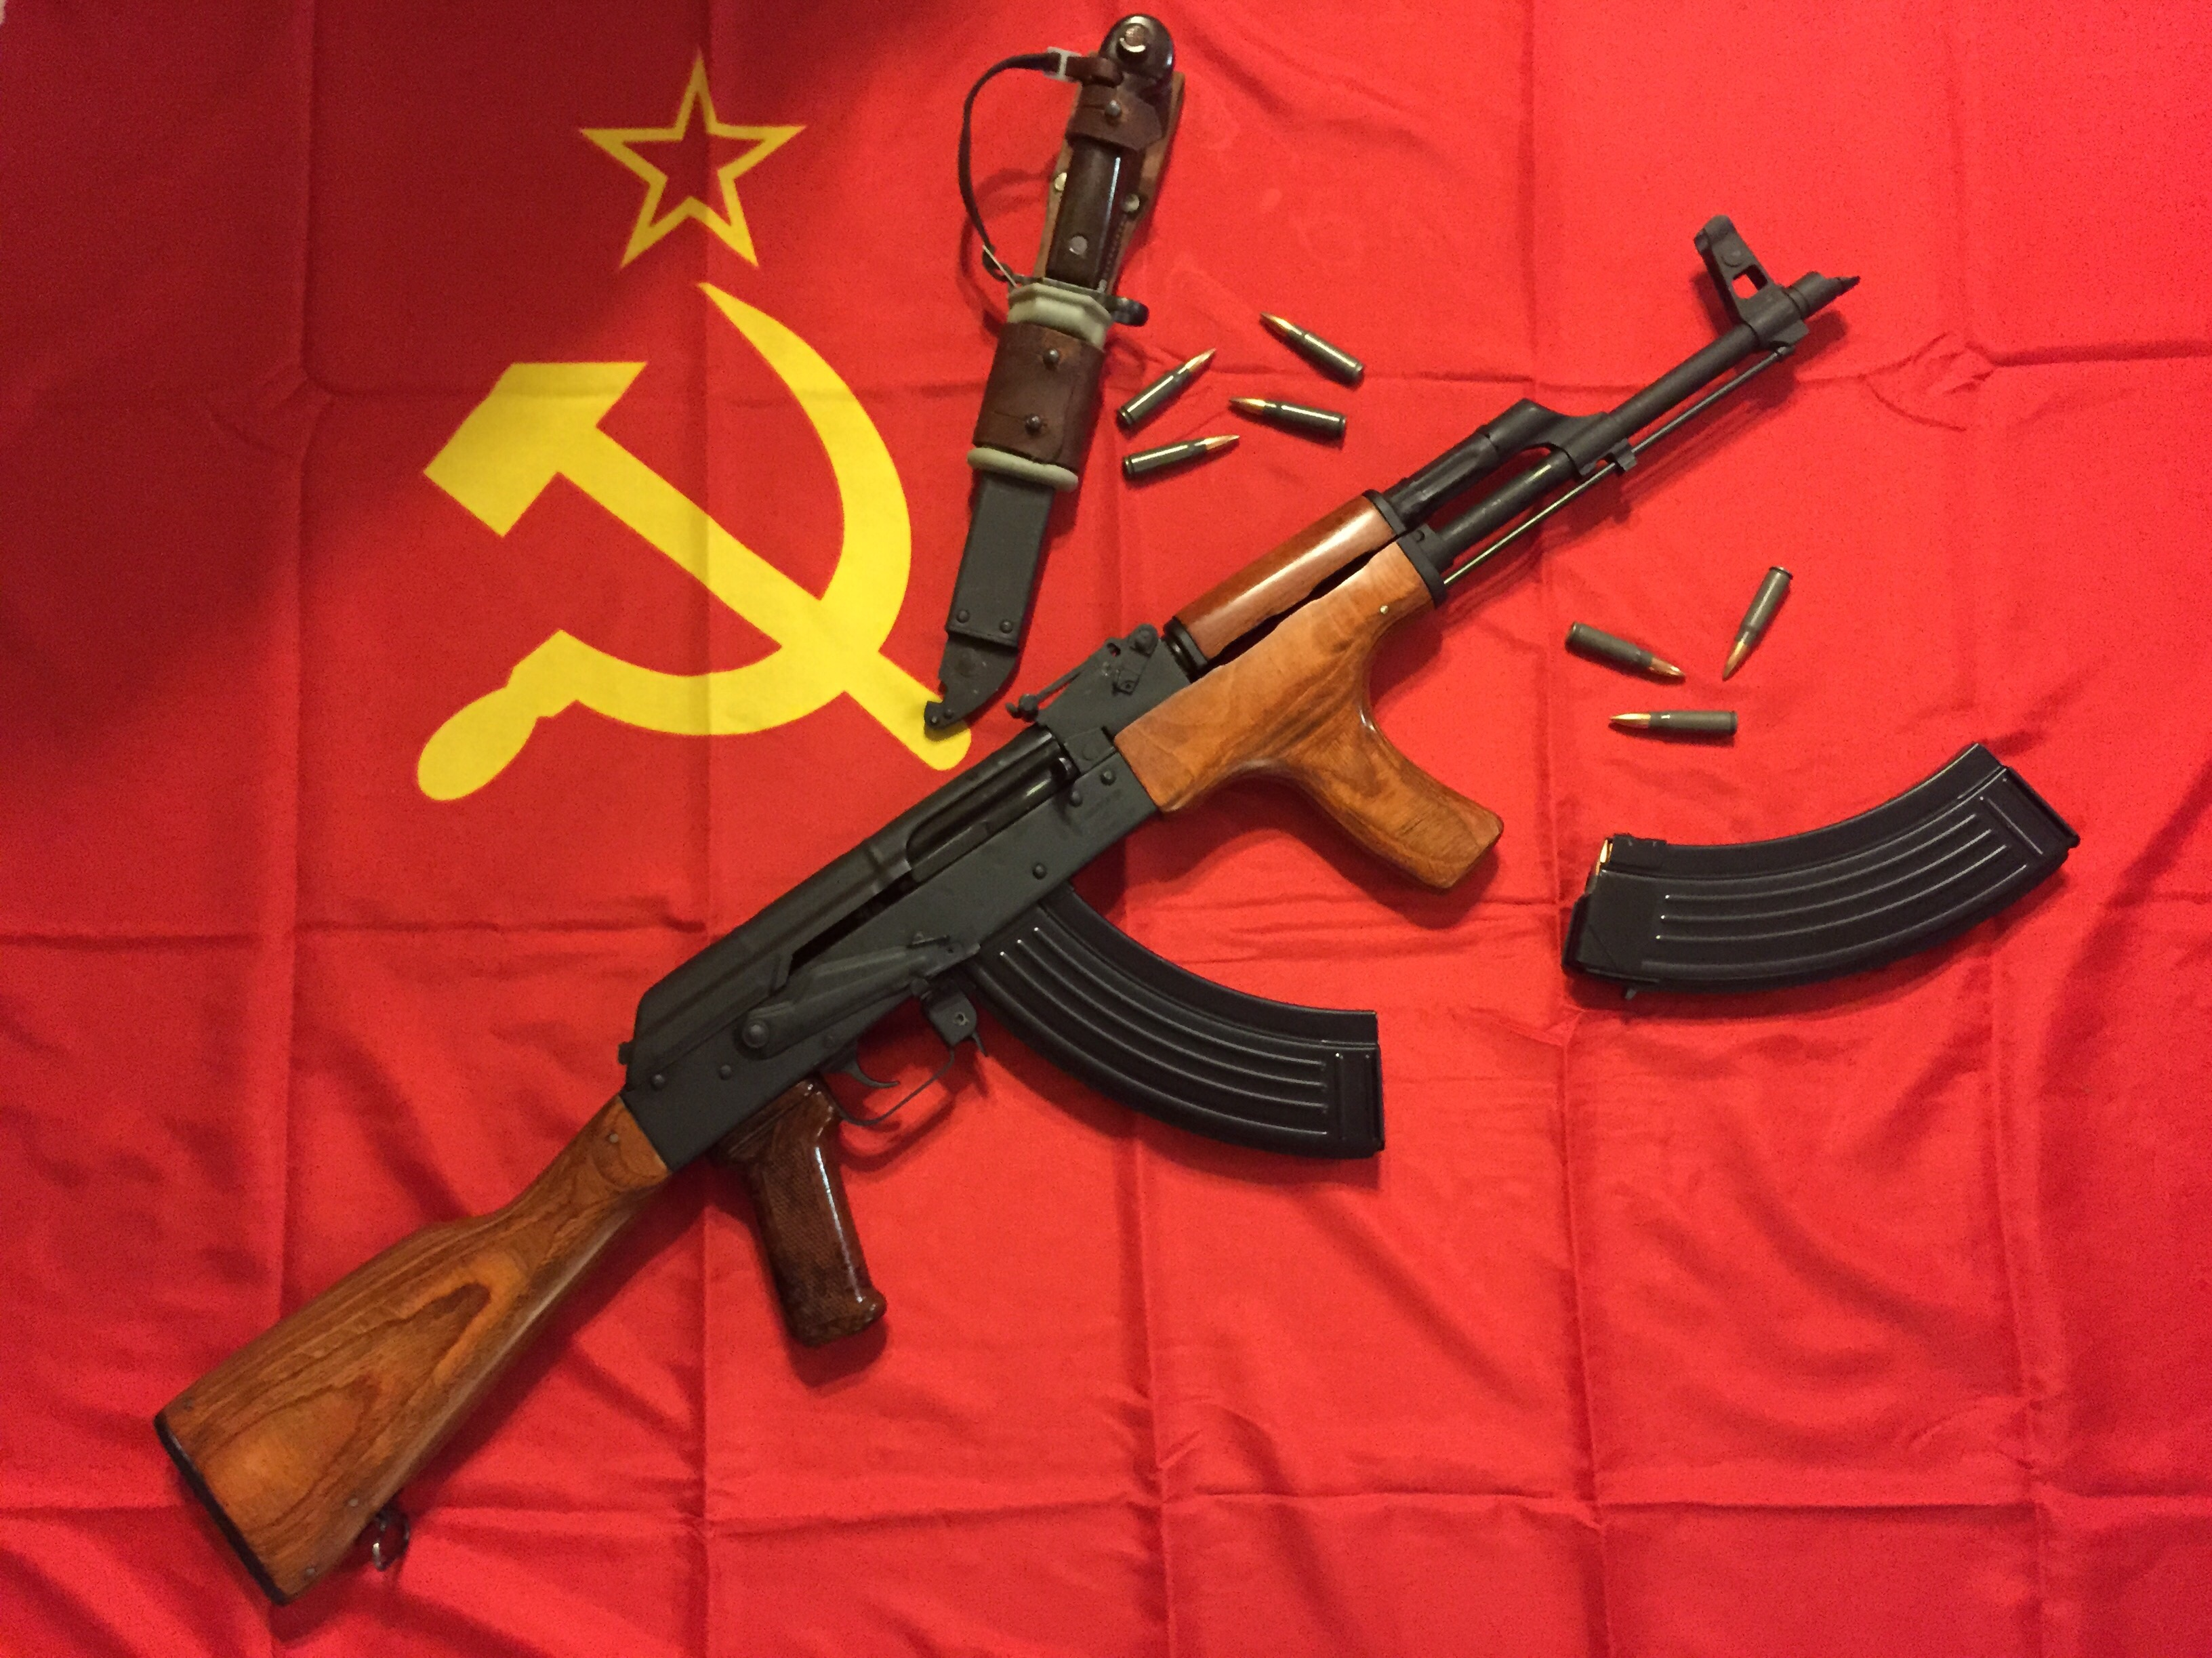 Wasr-10 with bayonet and donkey dong grip on soviet flag